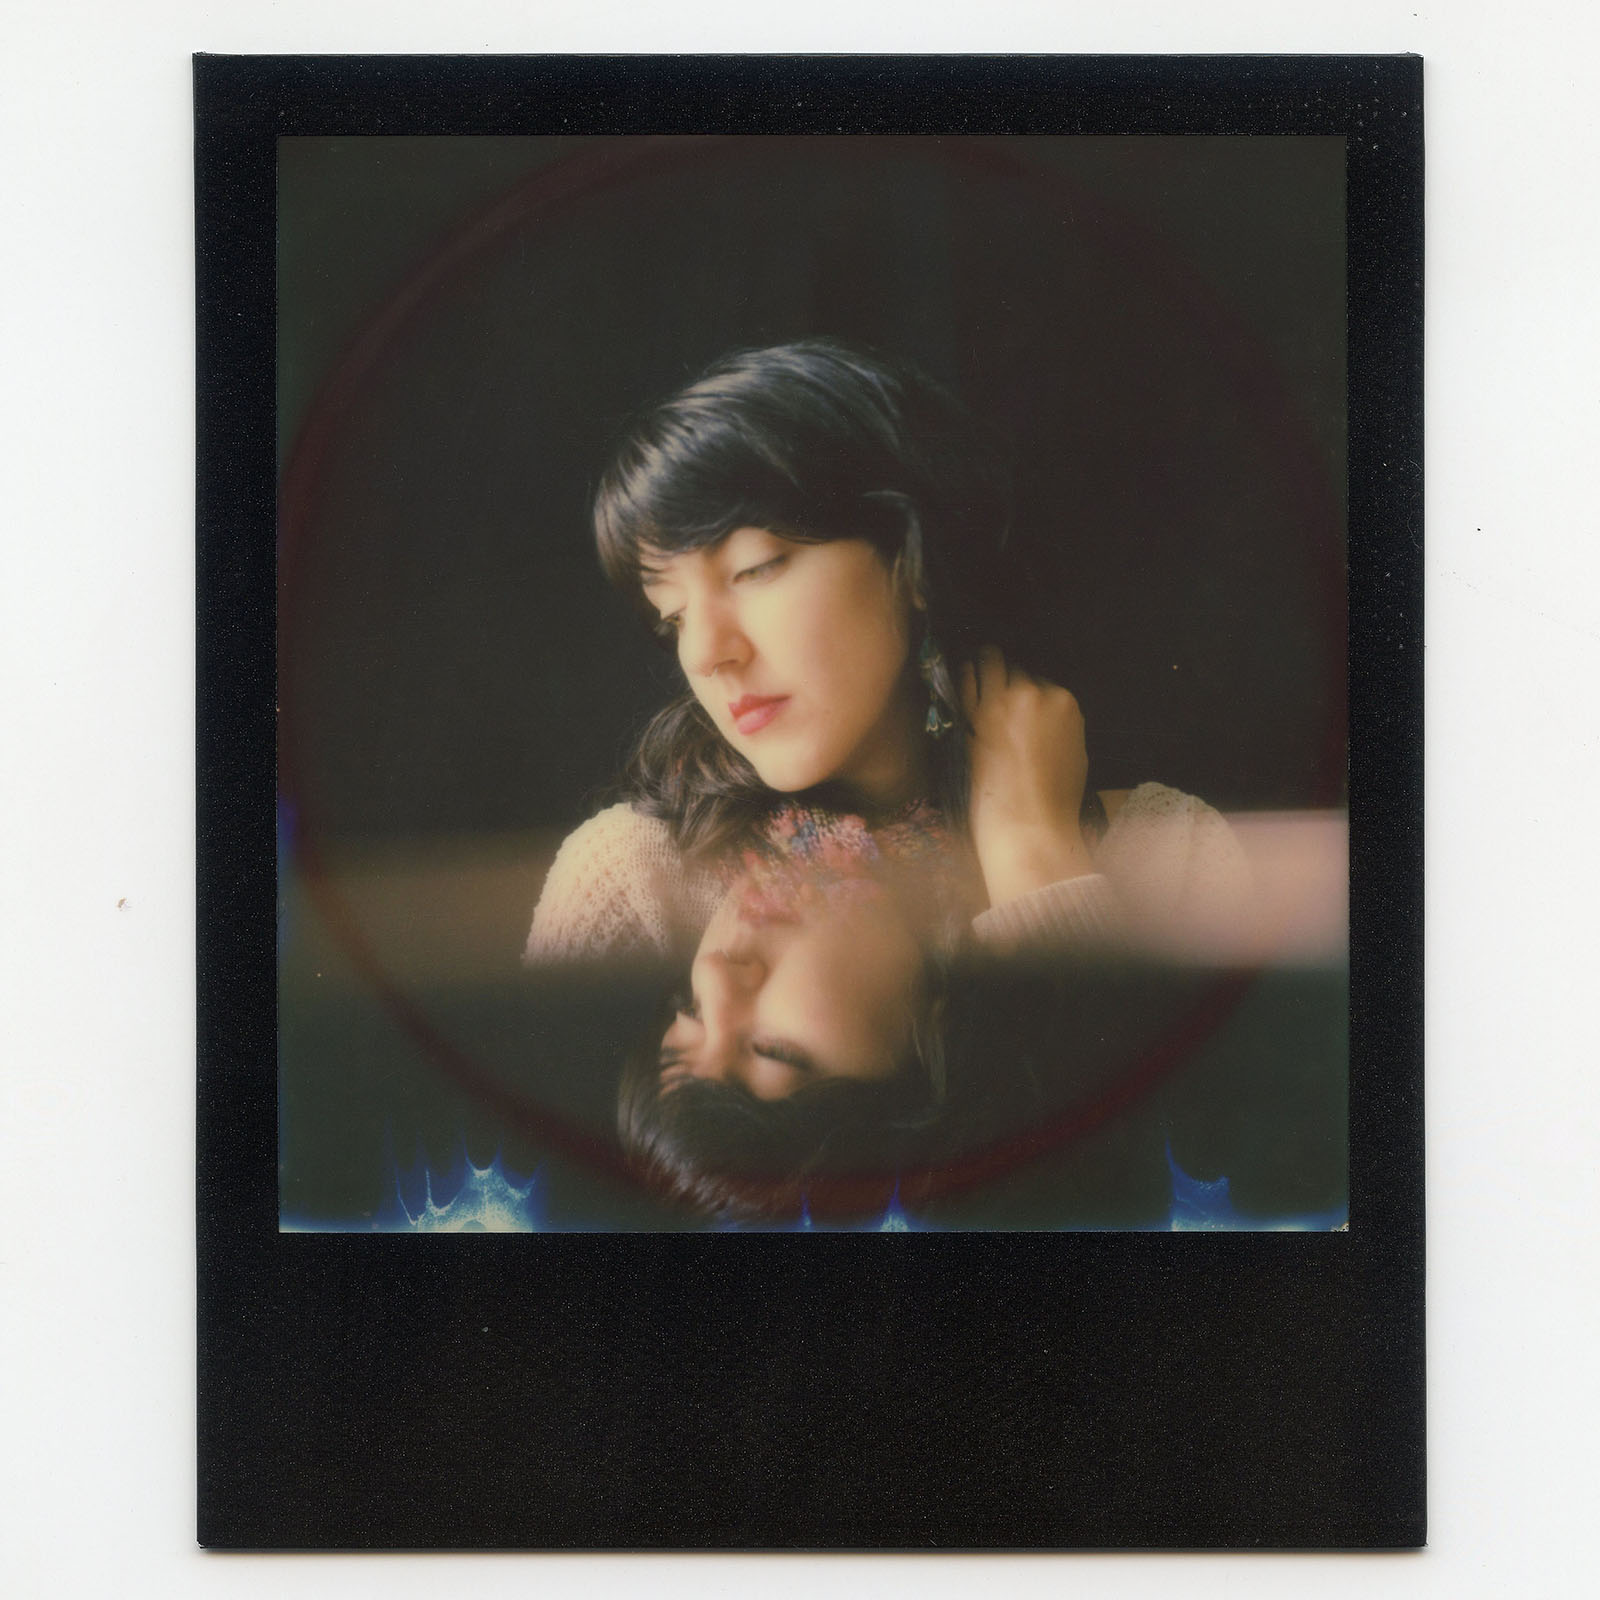 Polaroid portrait of a woman with her reflection